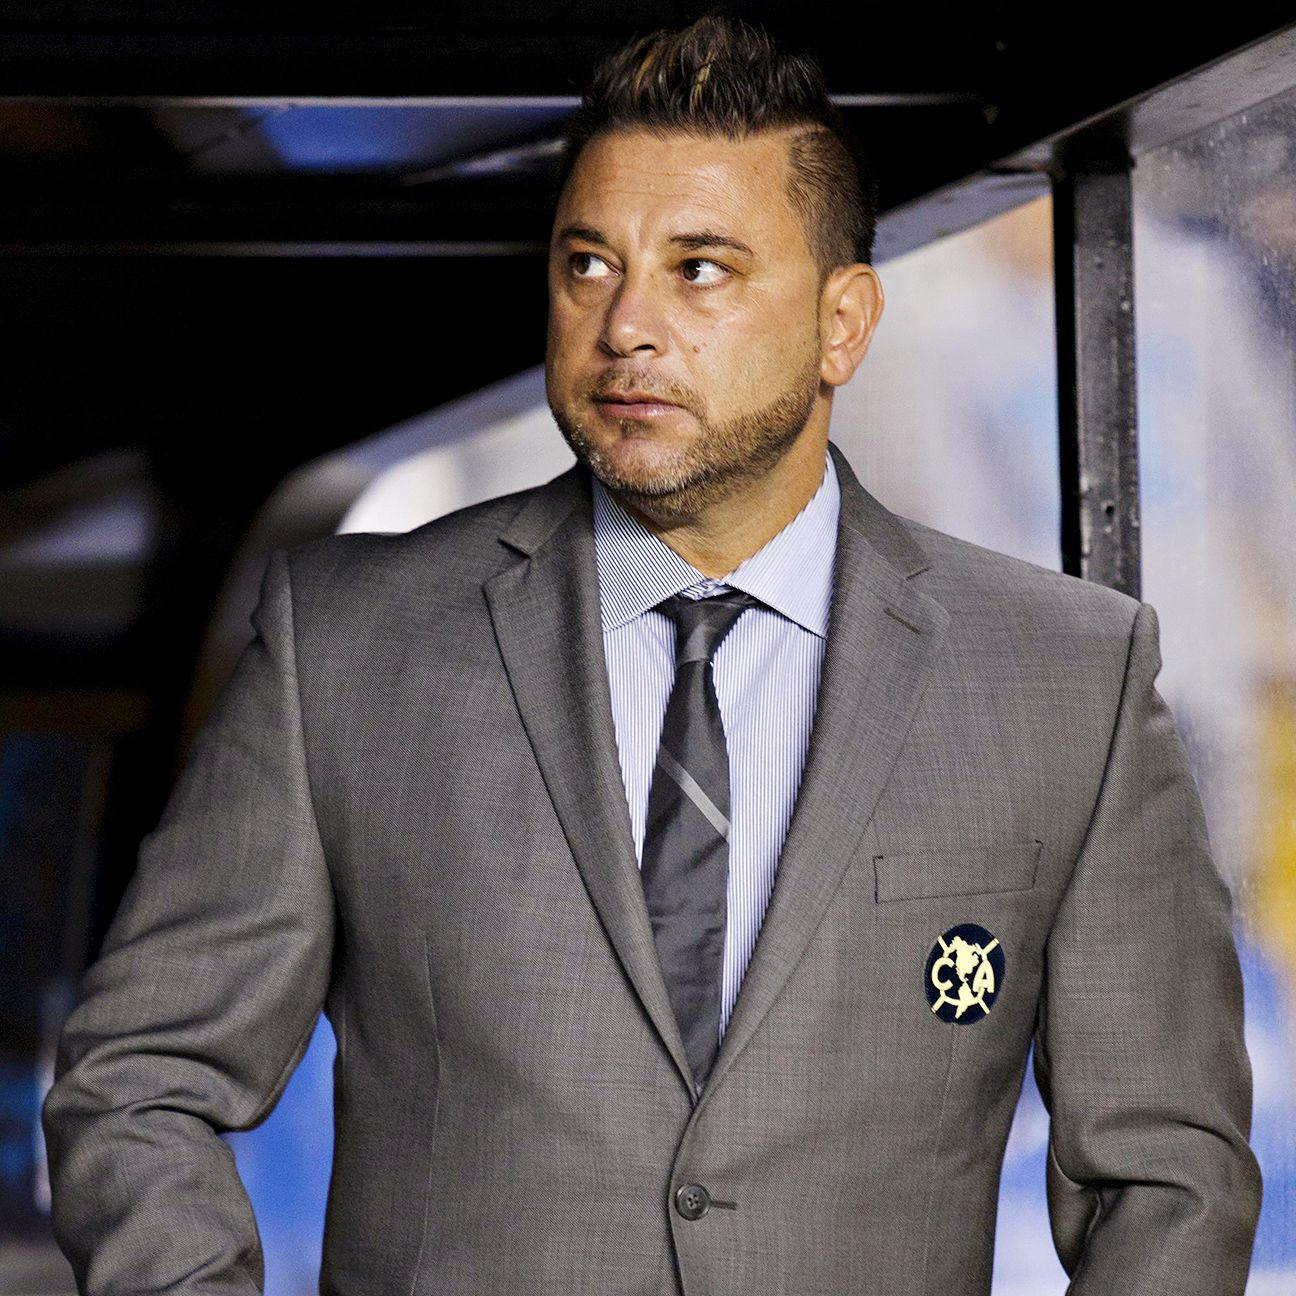 Antonio Mohamed's Club America head into Saturday's <i>clasico nacional</i> with Chivas with some doubts following last Friday's final minute defeat at Queretaro.